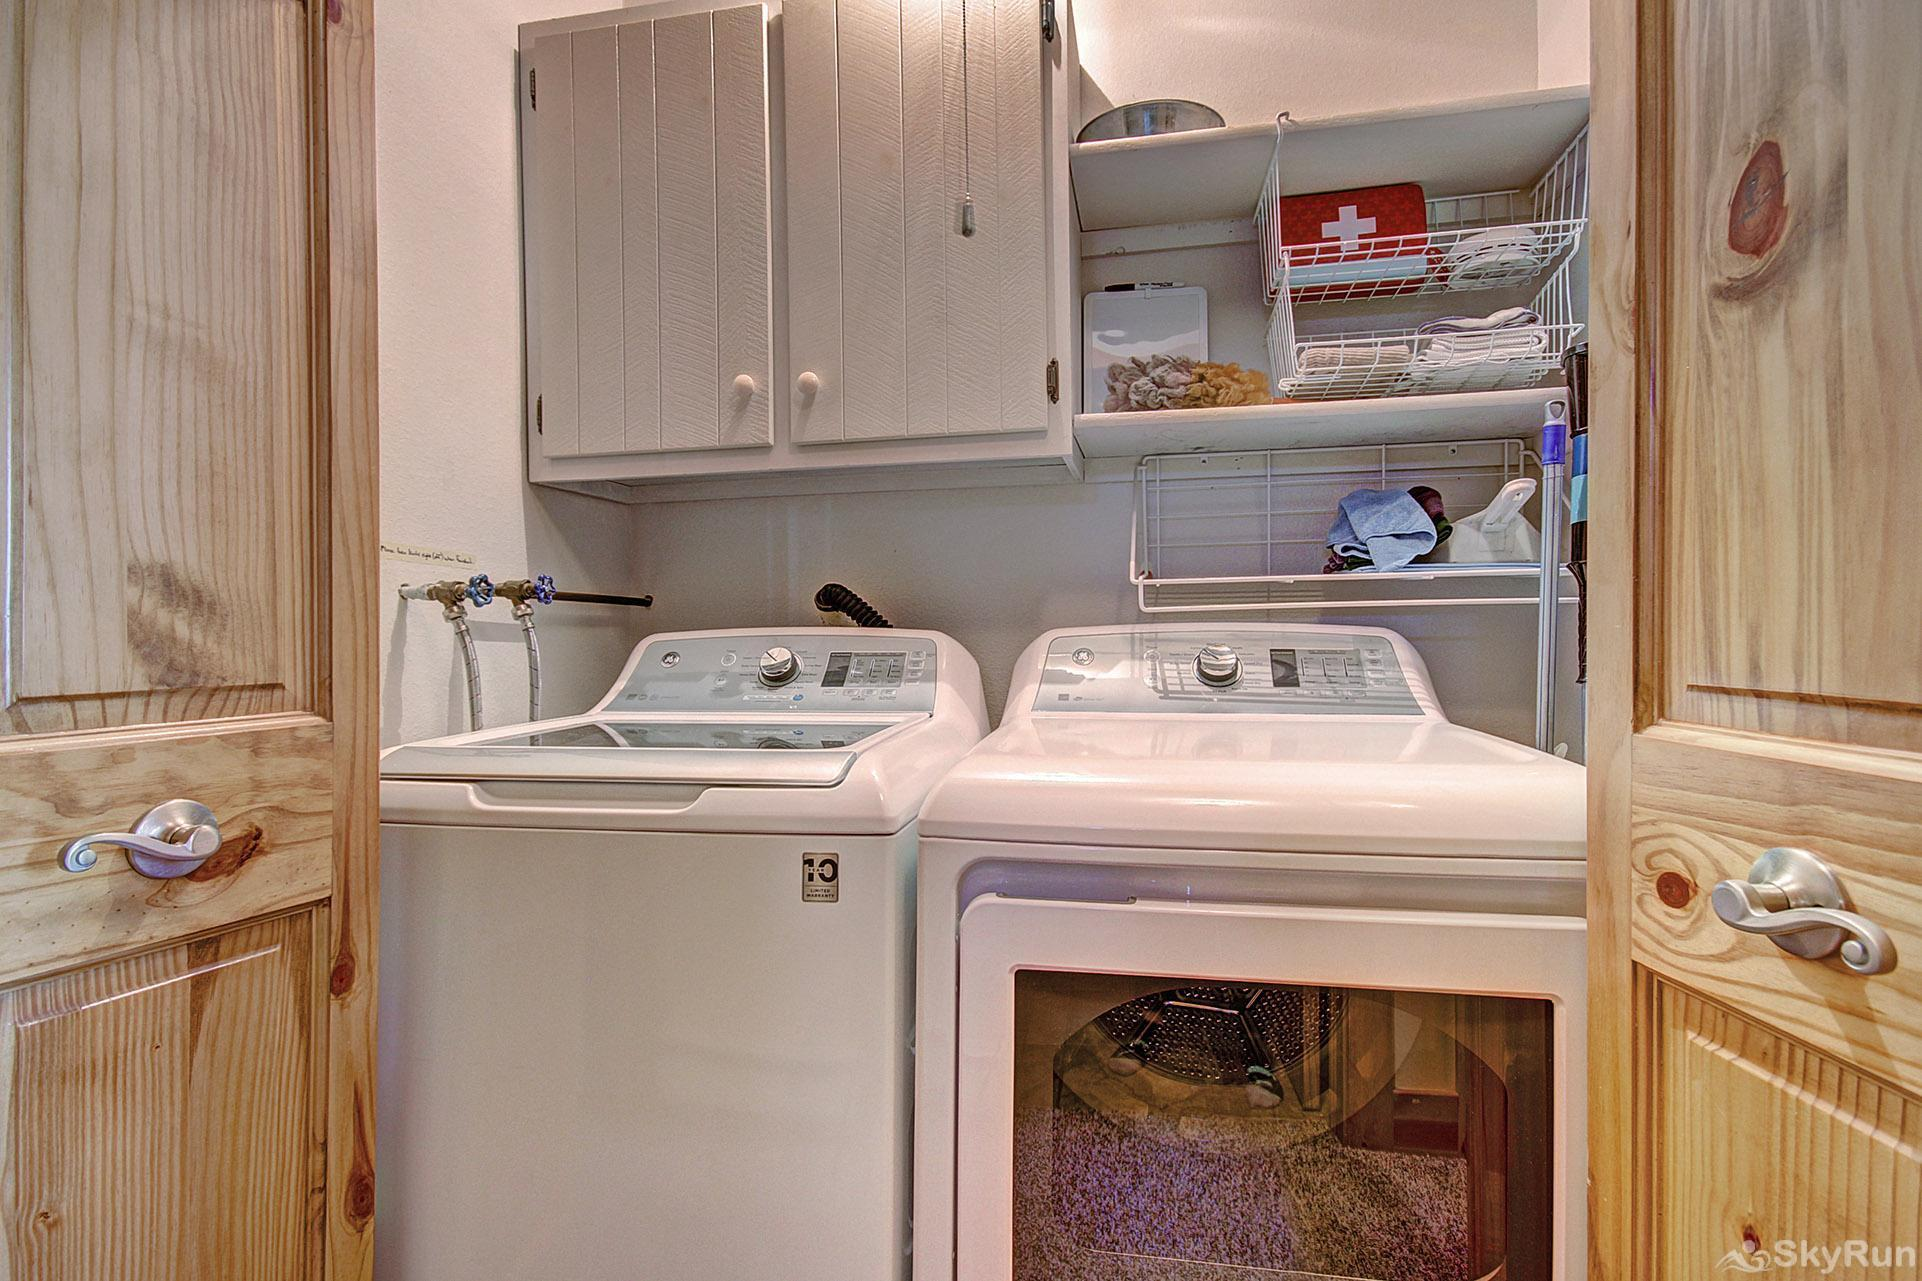 Wildernest Point Full size washer and dryer